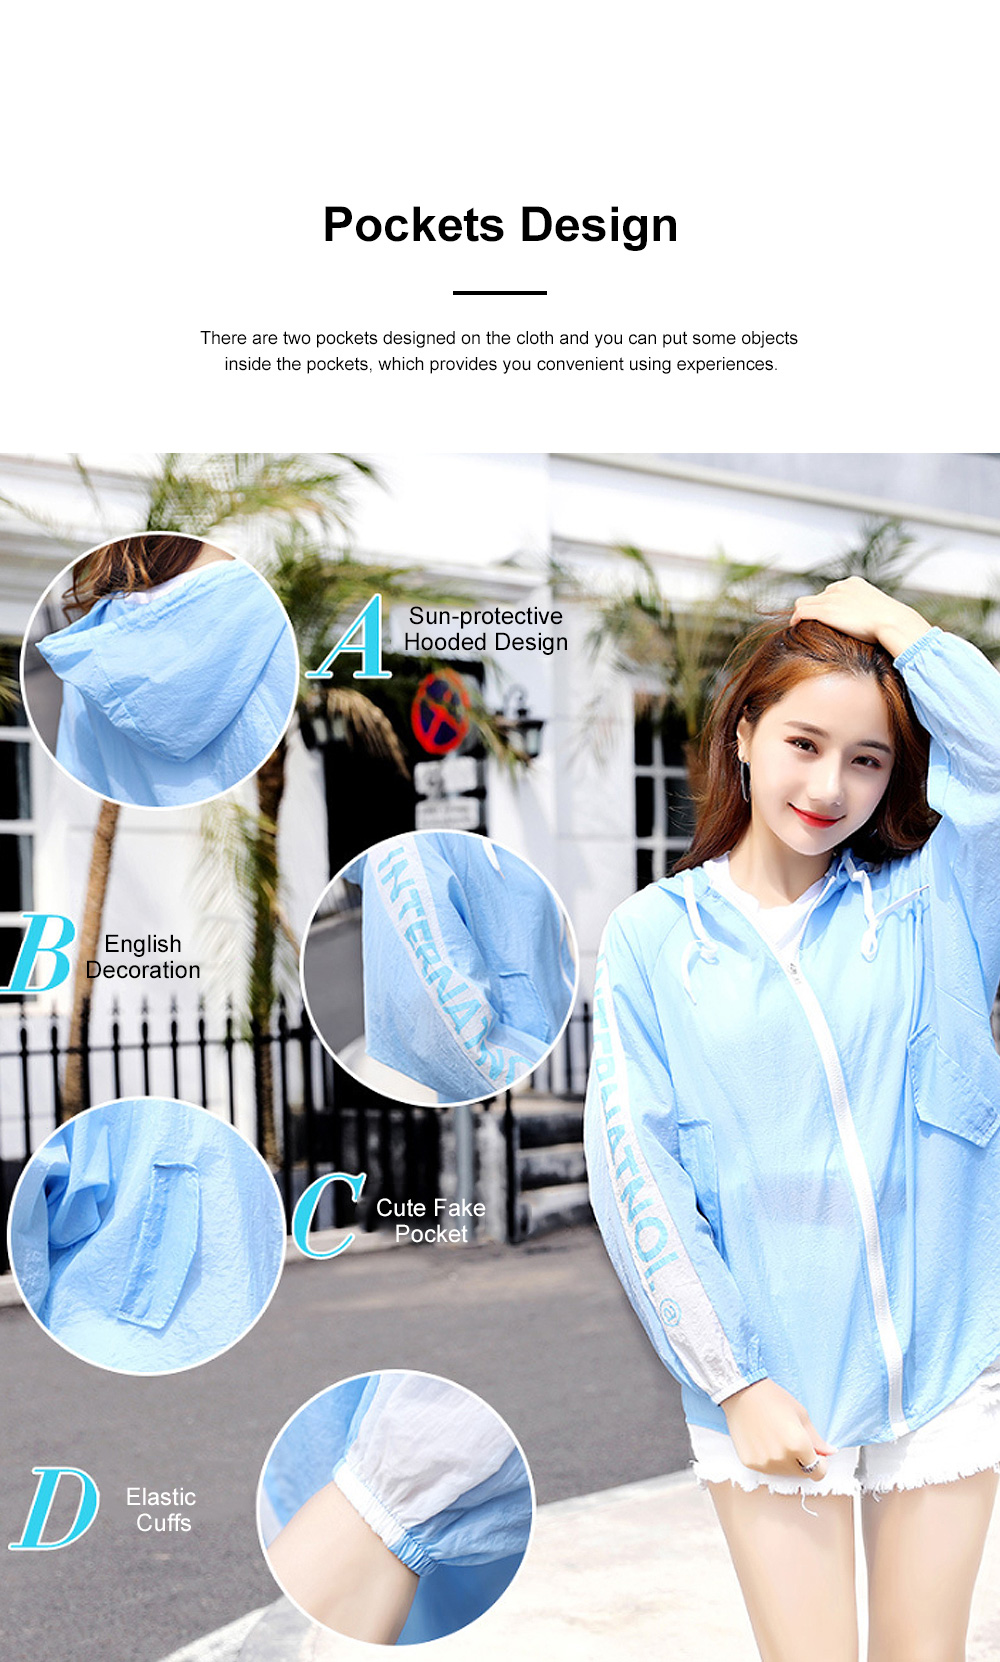 Stylish English Decoration Ultra-thin Sun-protective Clothing, Ultraviolet-Proof Quick Dry Outdoors Coat for Ladies 3